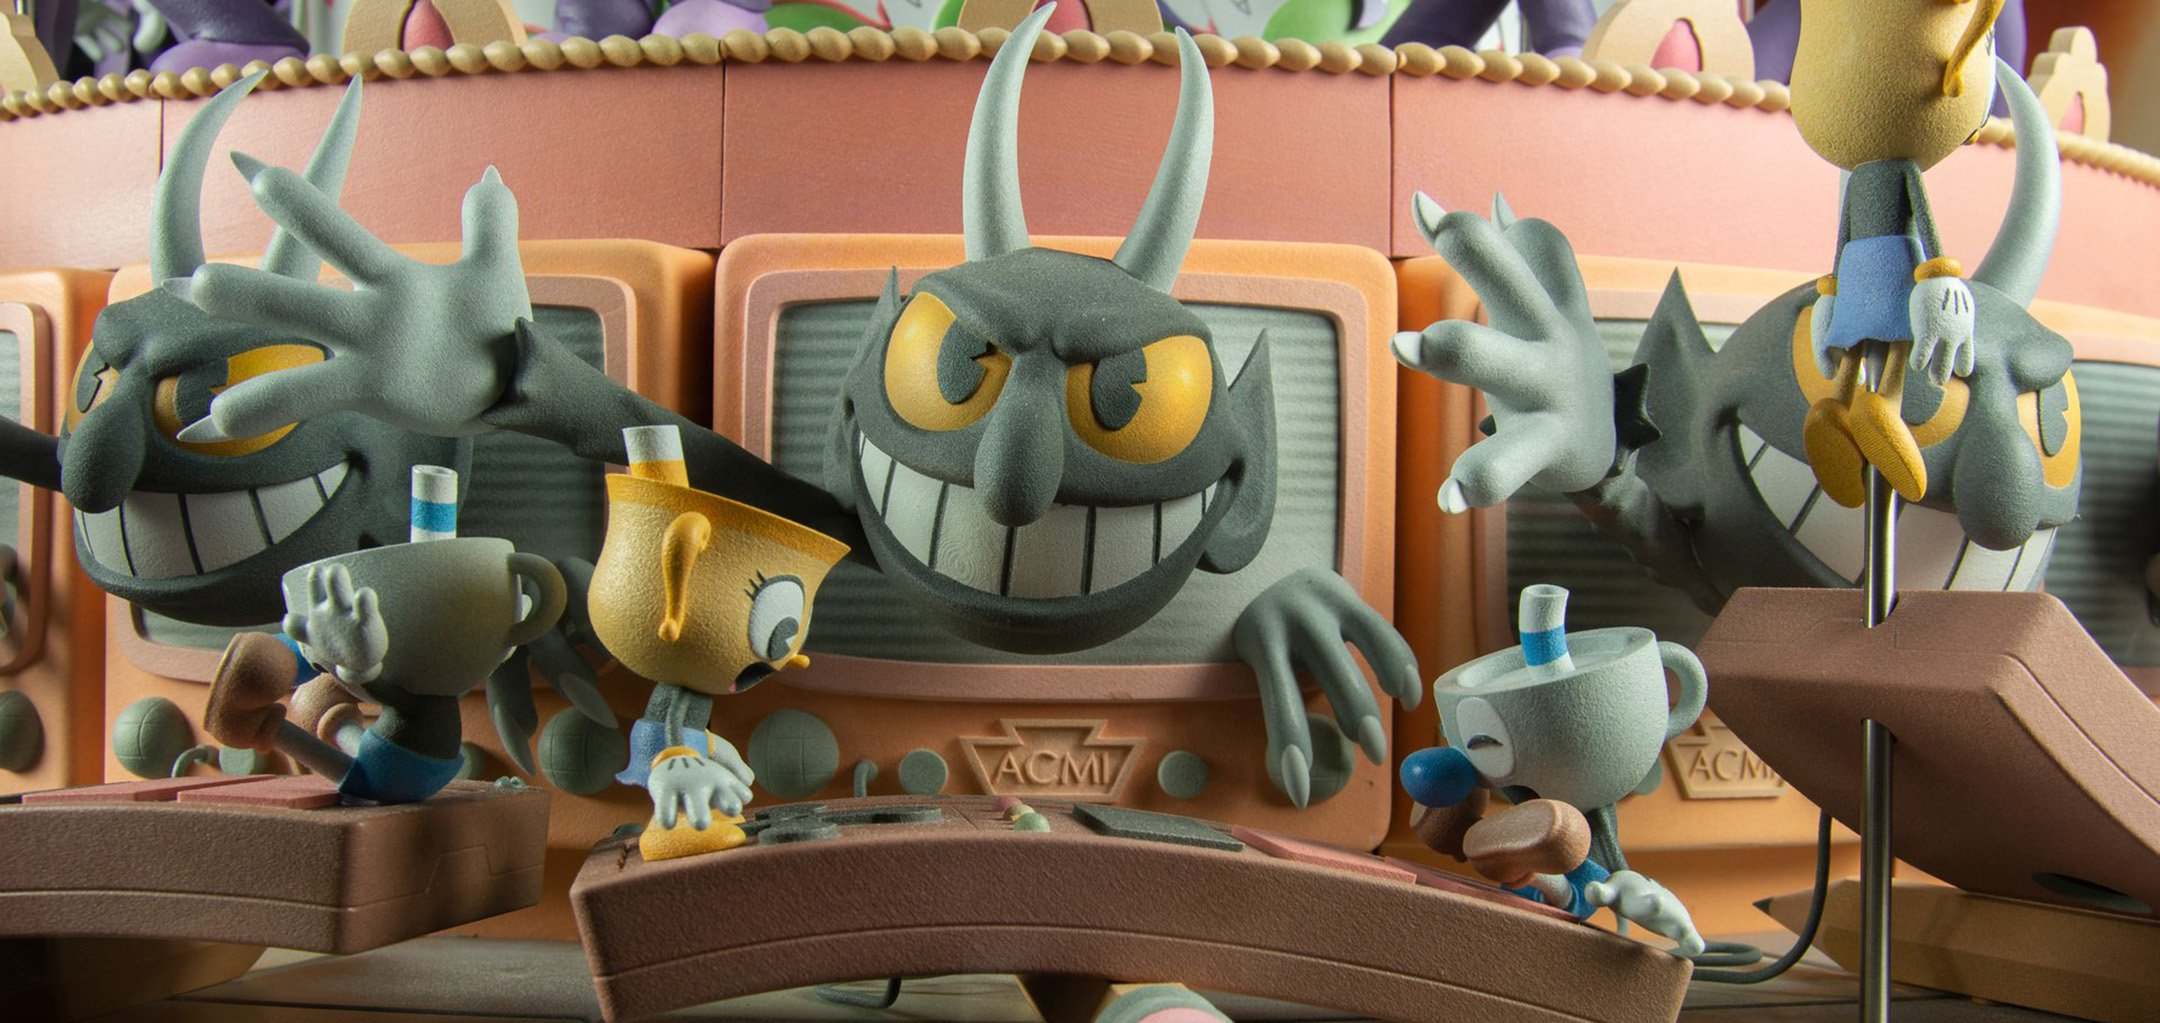 The Devil as featured in ACMI's Cuphead Zoetrope - cover image